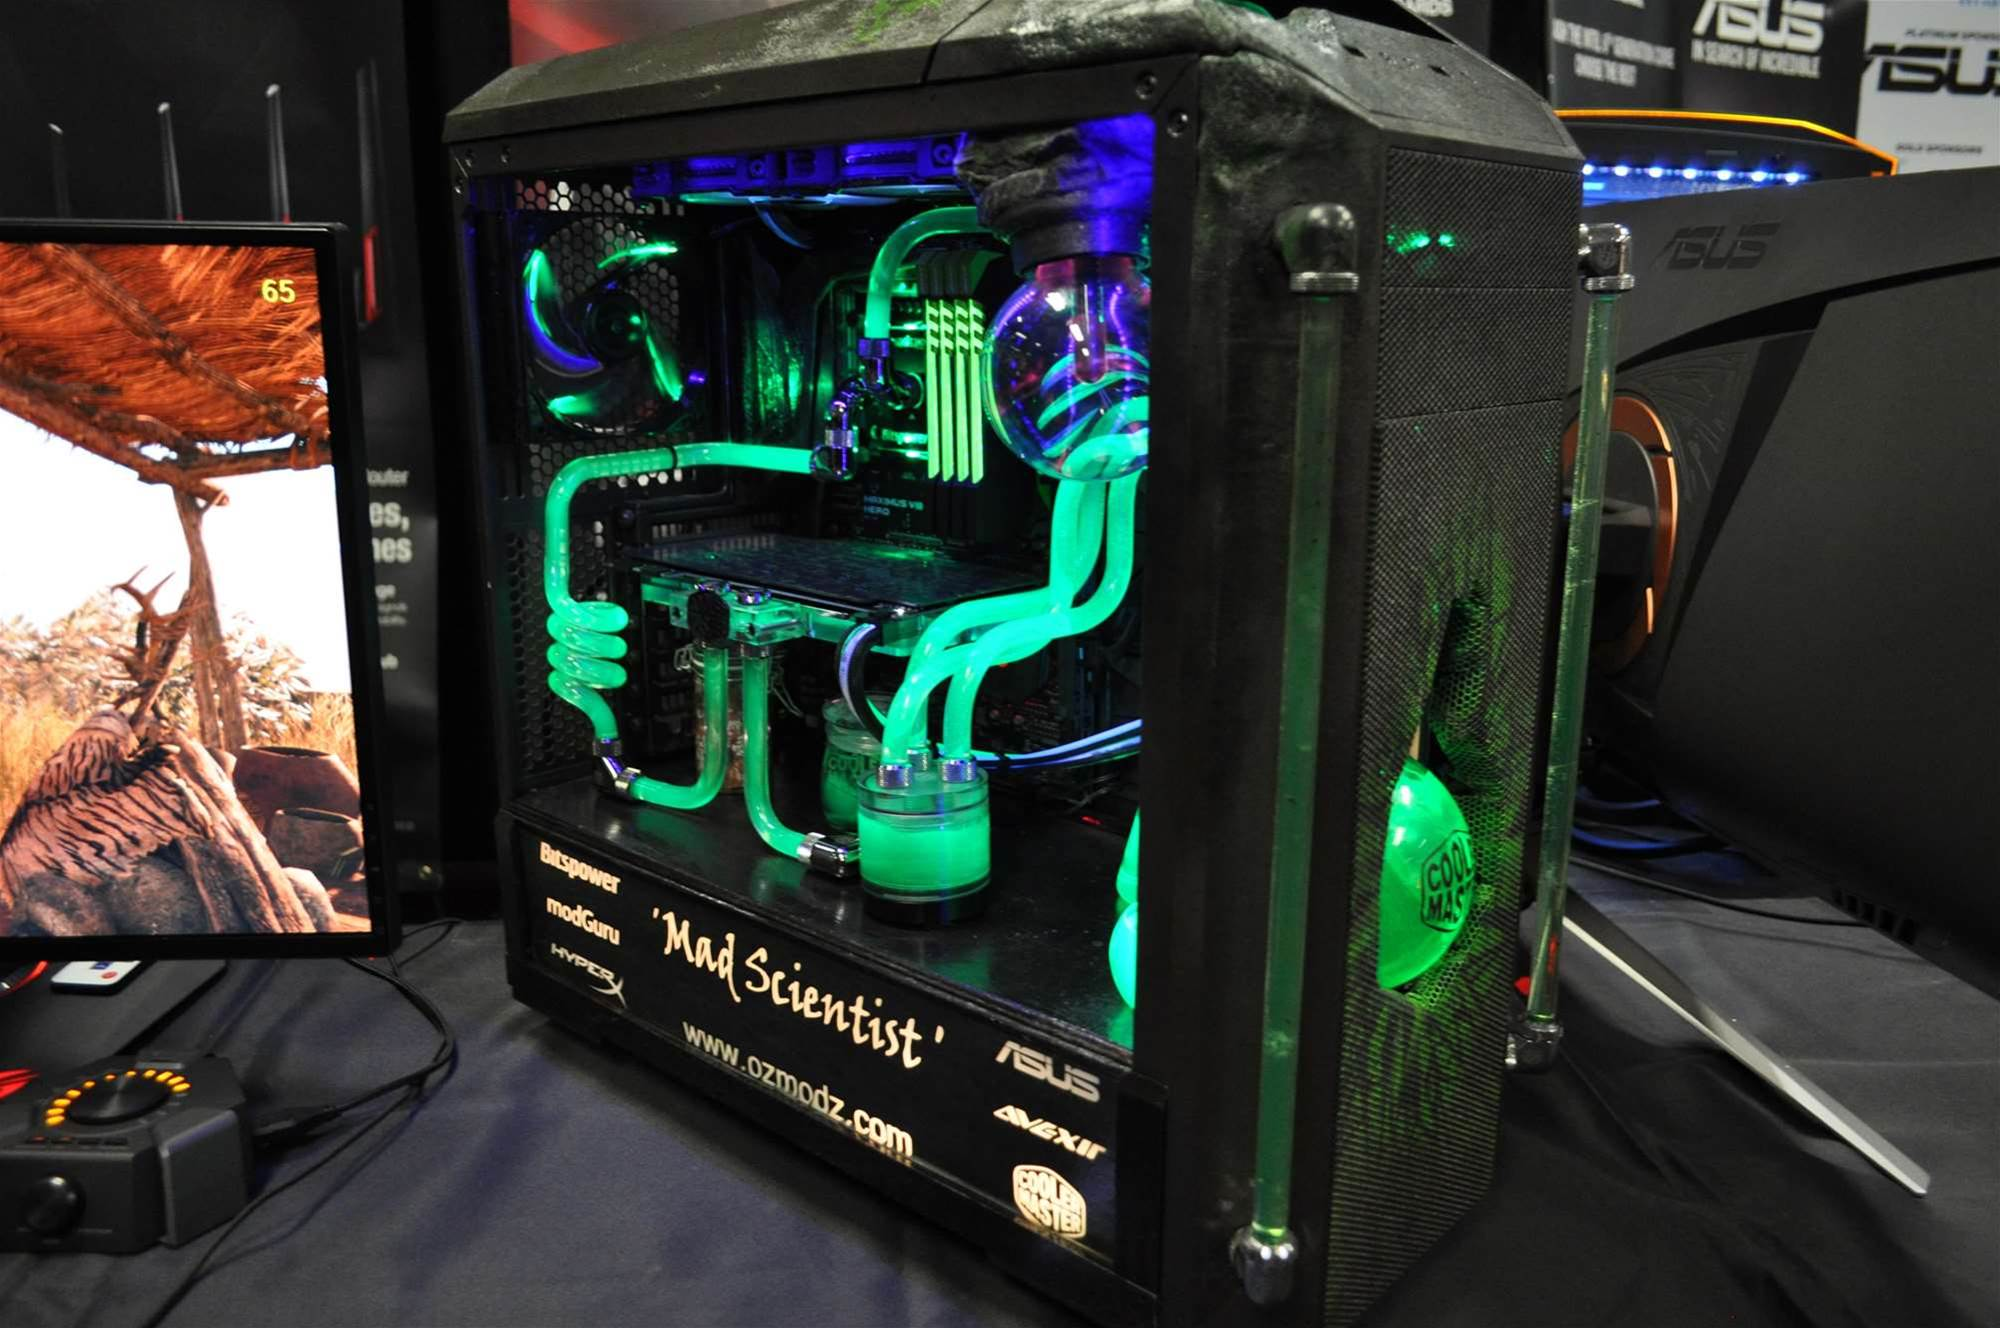 Upgrade Australia: Case mod special, feast your eyes on these PC beauties